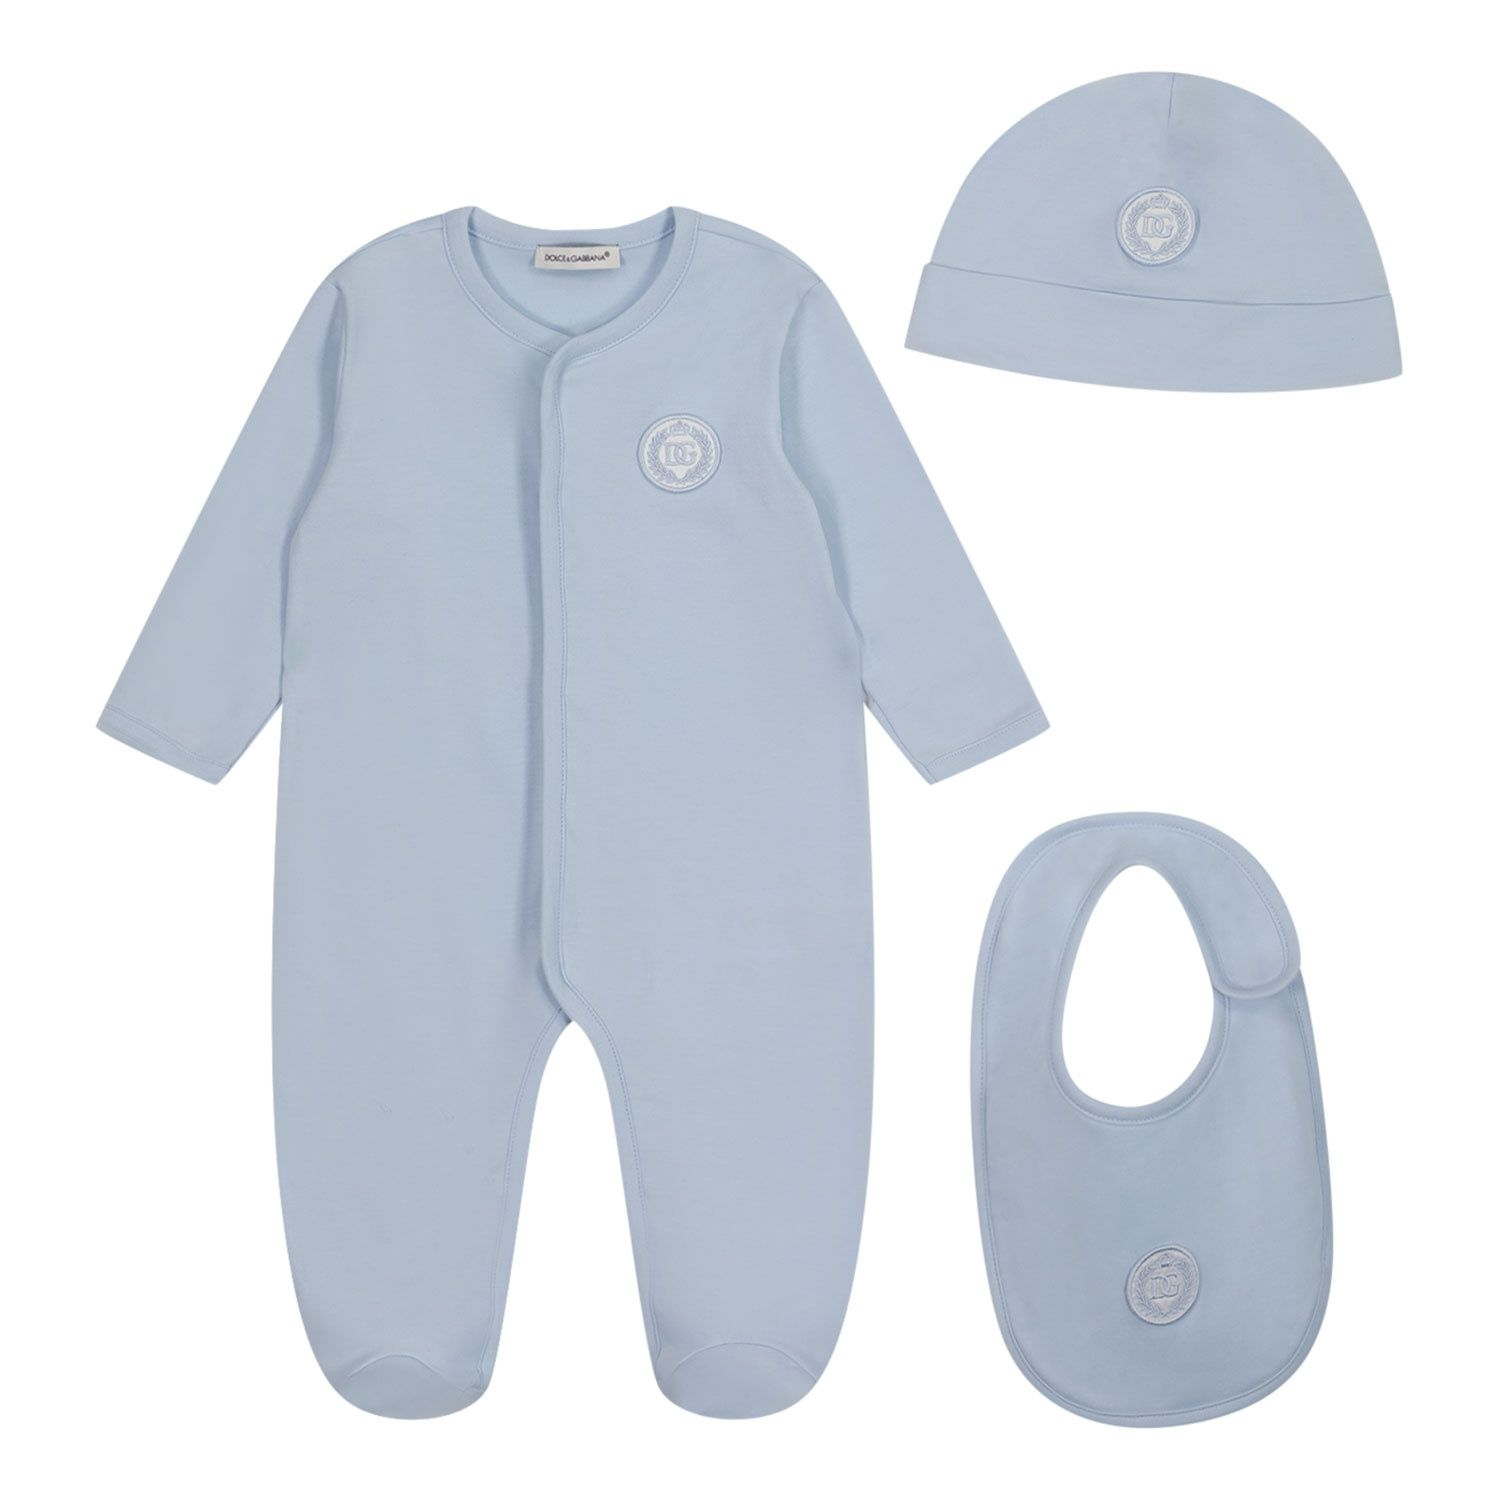 Picture of Dolce & Gabbana L1JG24 G7XFA baby playsuit light blue